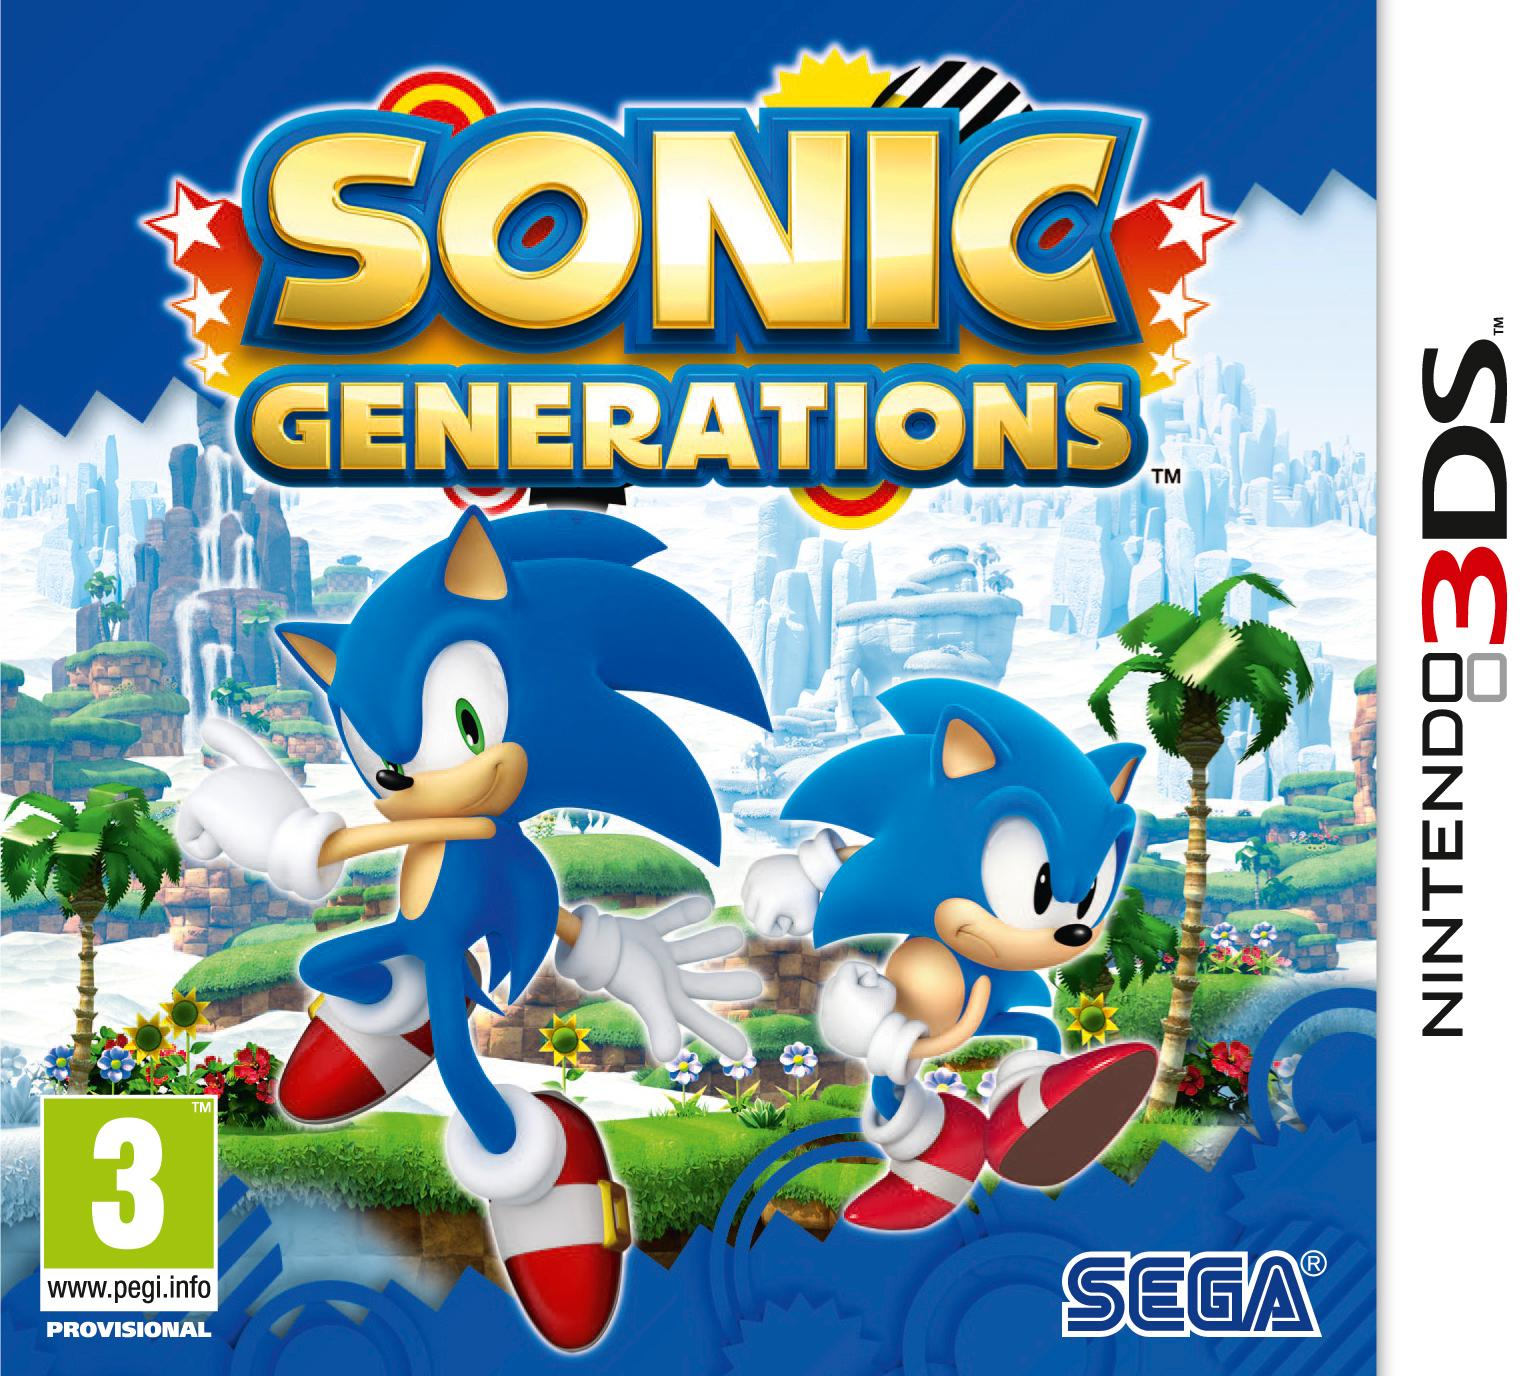 Sonic Generations 3DS Release Date Announced | PixlBit